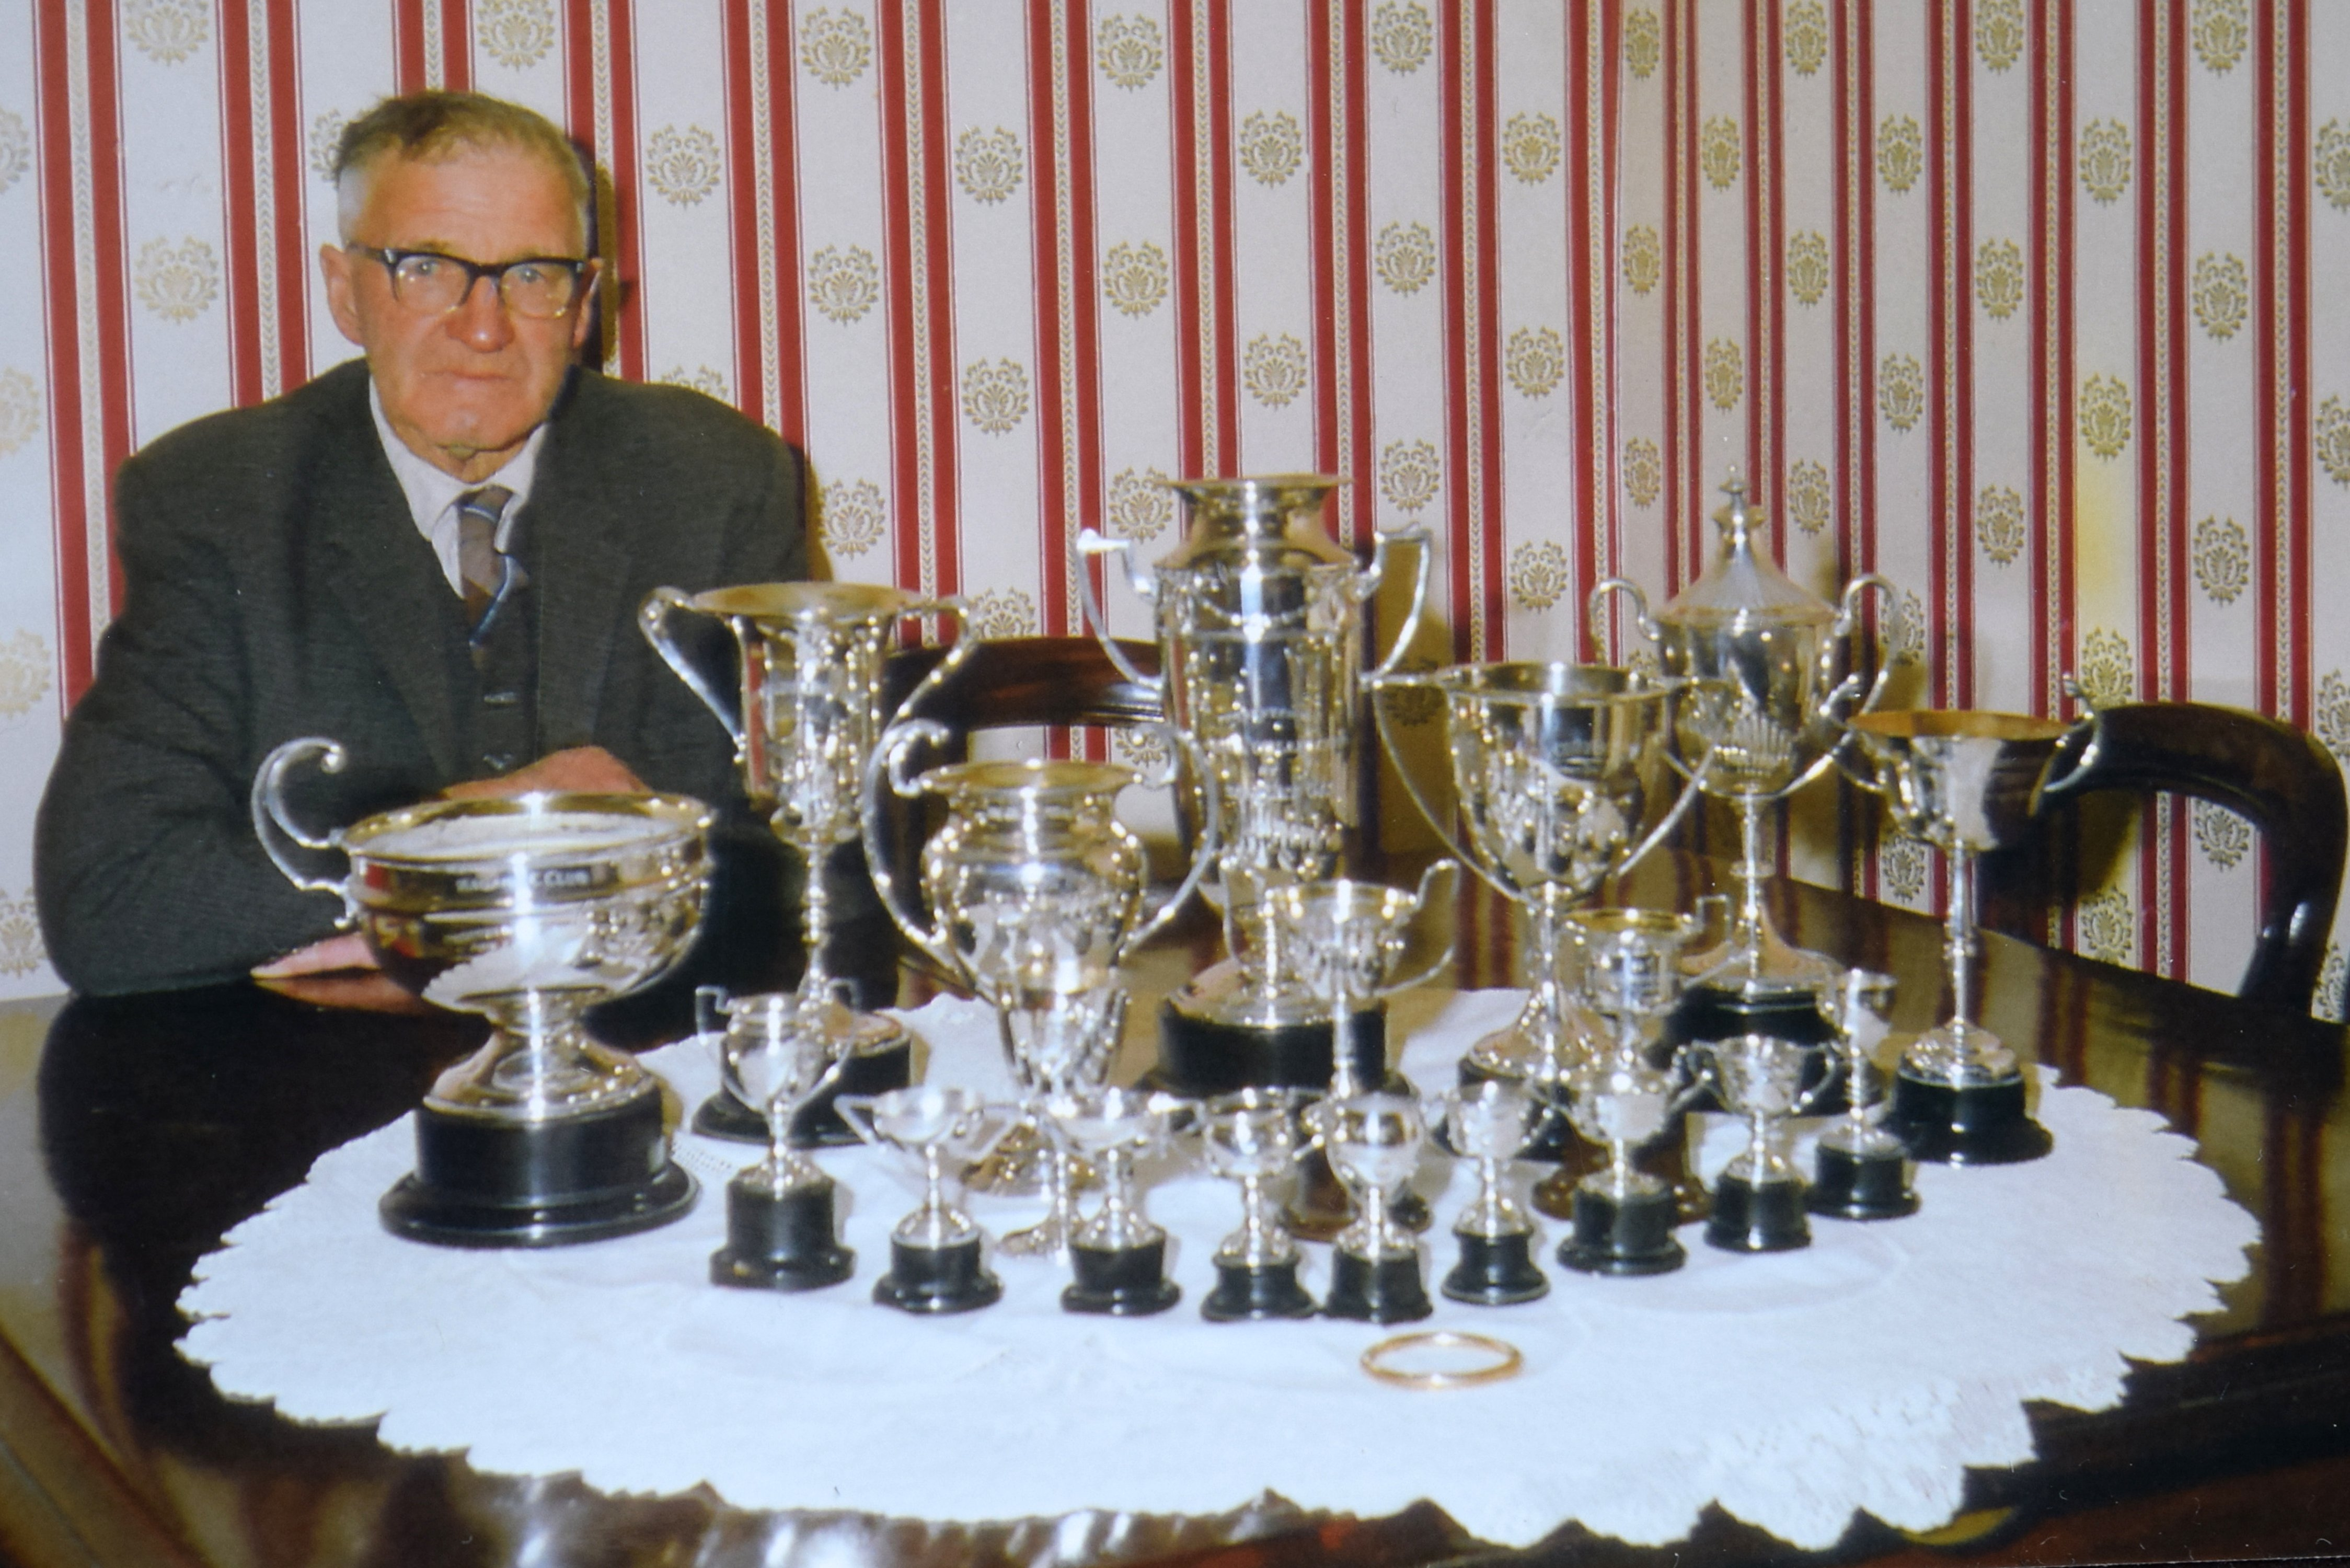 Kauana Sheep Dog Trial Club life member the late John Anderson displays his collection of...